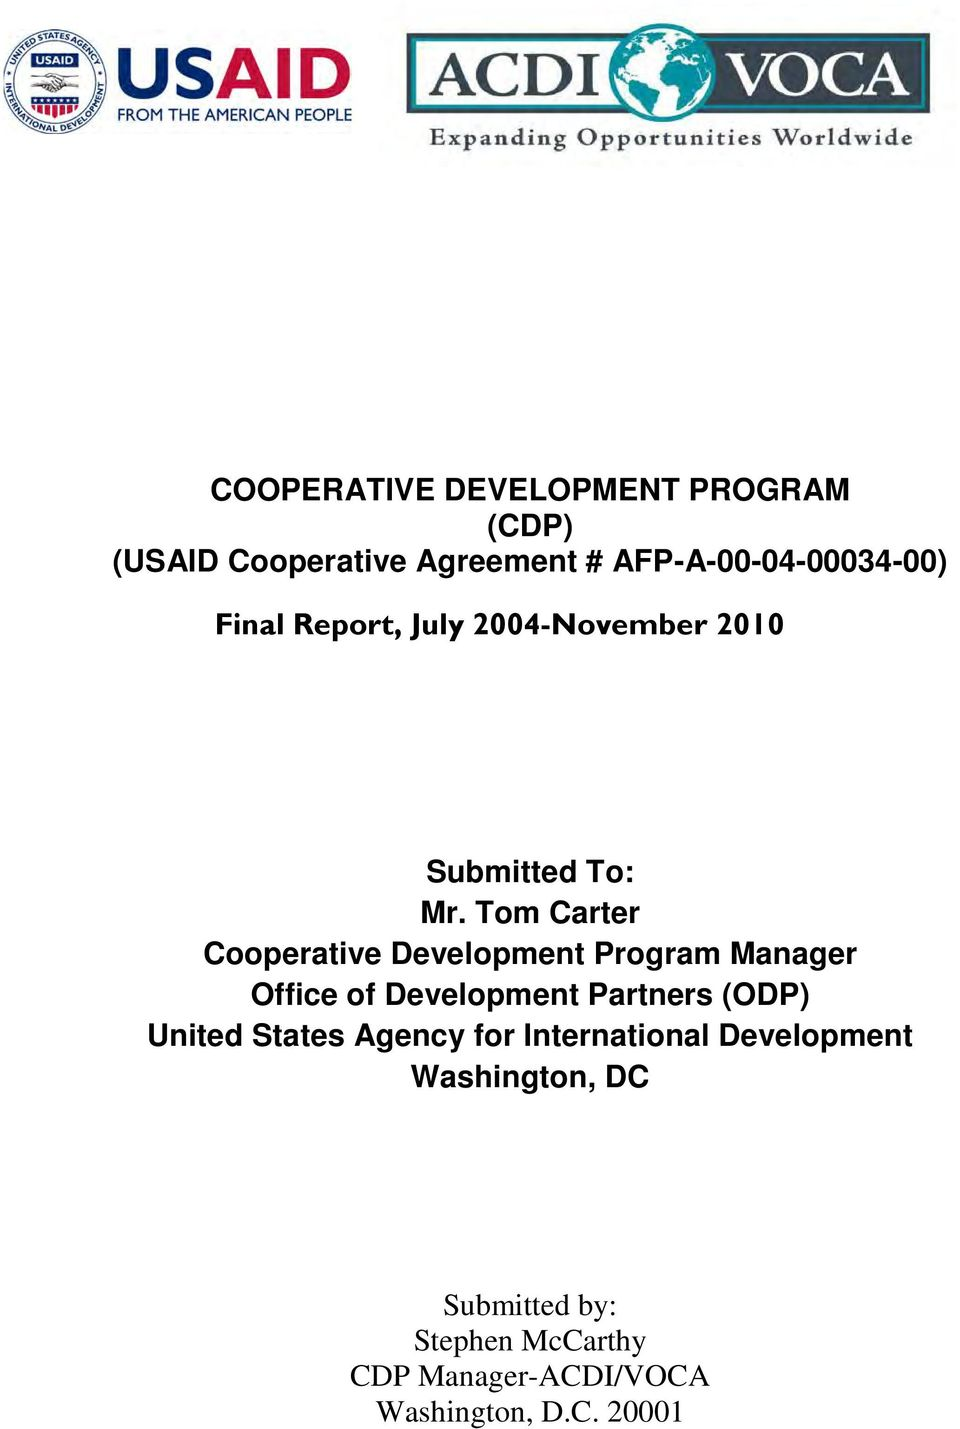 Tom Carter Cooperative Development Program Manager Office of Development Partners (ODP)